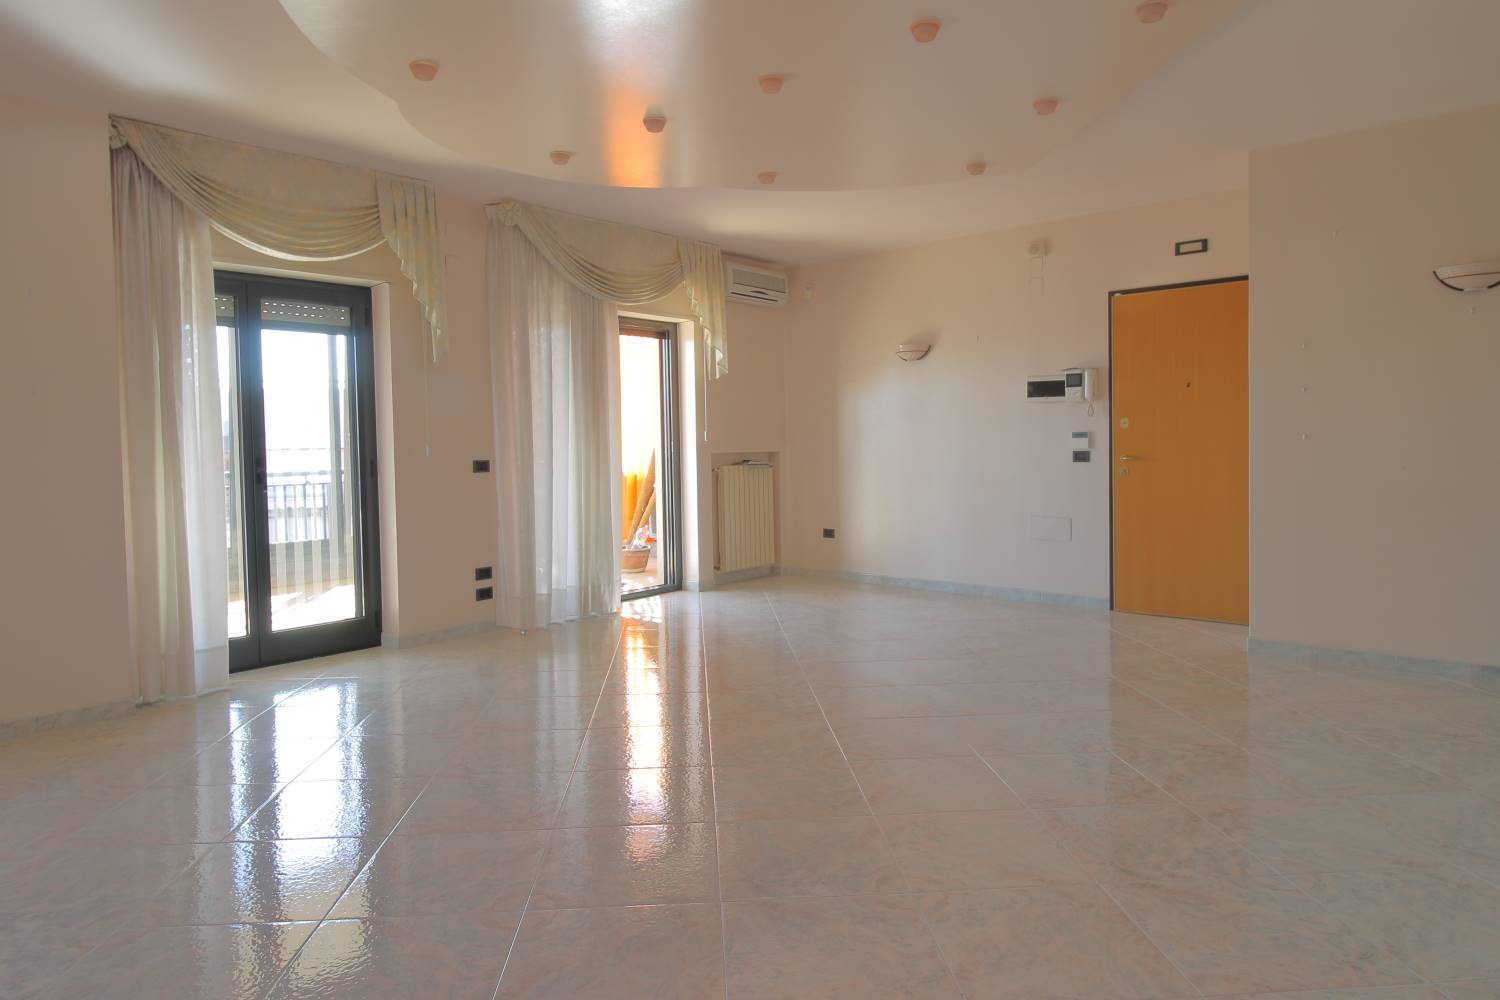 MONOPOLI, Apartment for sale of 180 Sq. mt., Good condition, Heating Individual heating system, Energetic class: G, Epi: 165 kwh/m2 year, placed at 3° on 3, composed by: 7 Rooms, Separate kitchen, ,